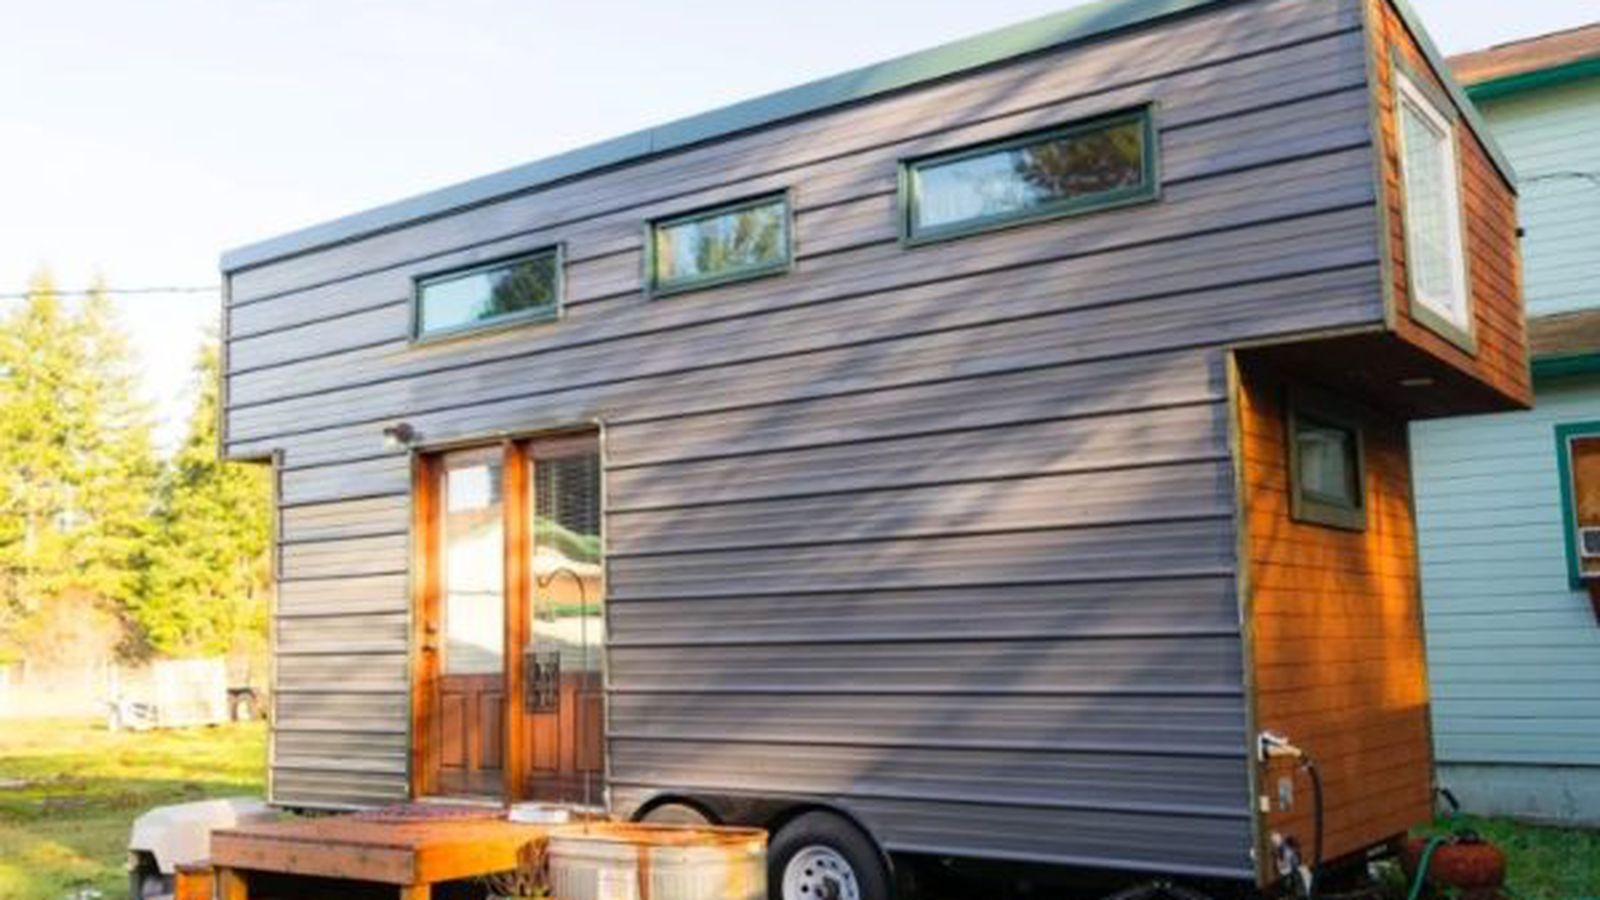 Extra touches make a 37k tiny house on wheels excel curbed seattle - Small houses wheels home getaway ...